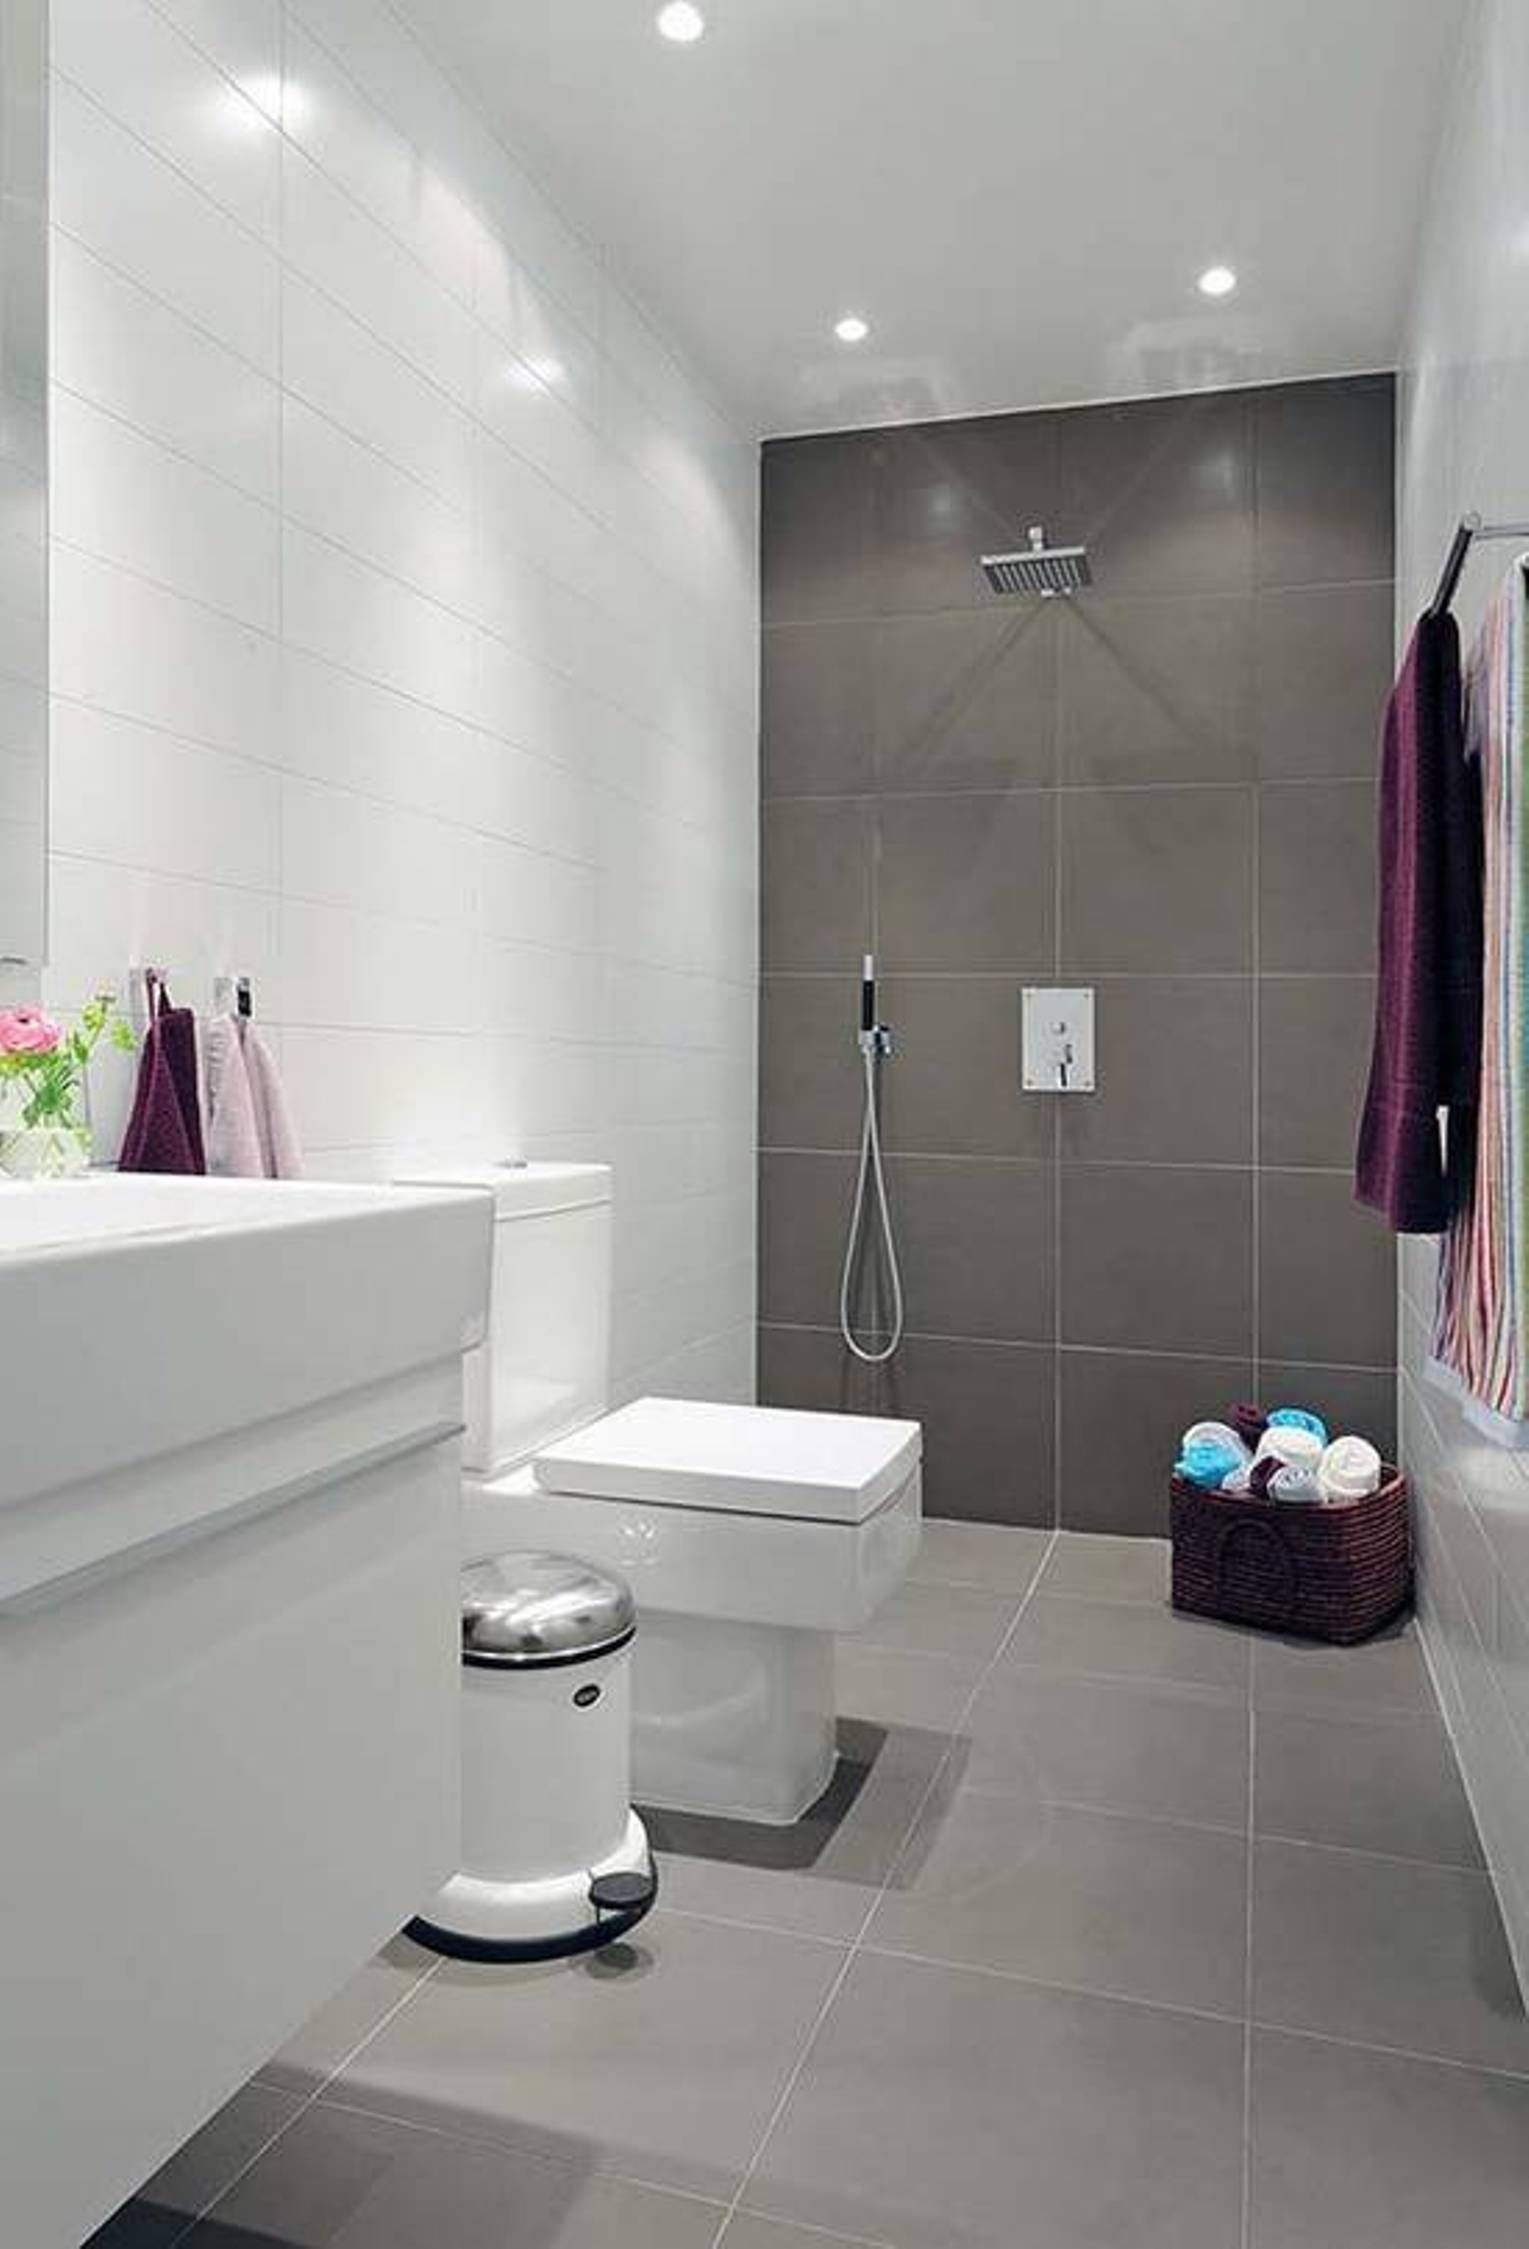 Awesome 10 Bathroom Color Trends 2016 Some Of The Cutest And Exciting Too For You 10 Bathro In 2020 Small Bathroom Tiles Small Bathroom Modern Small Bathrooms